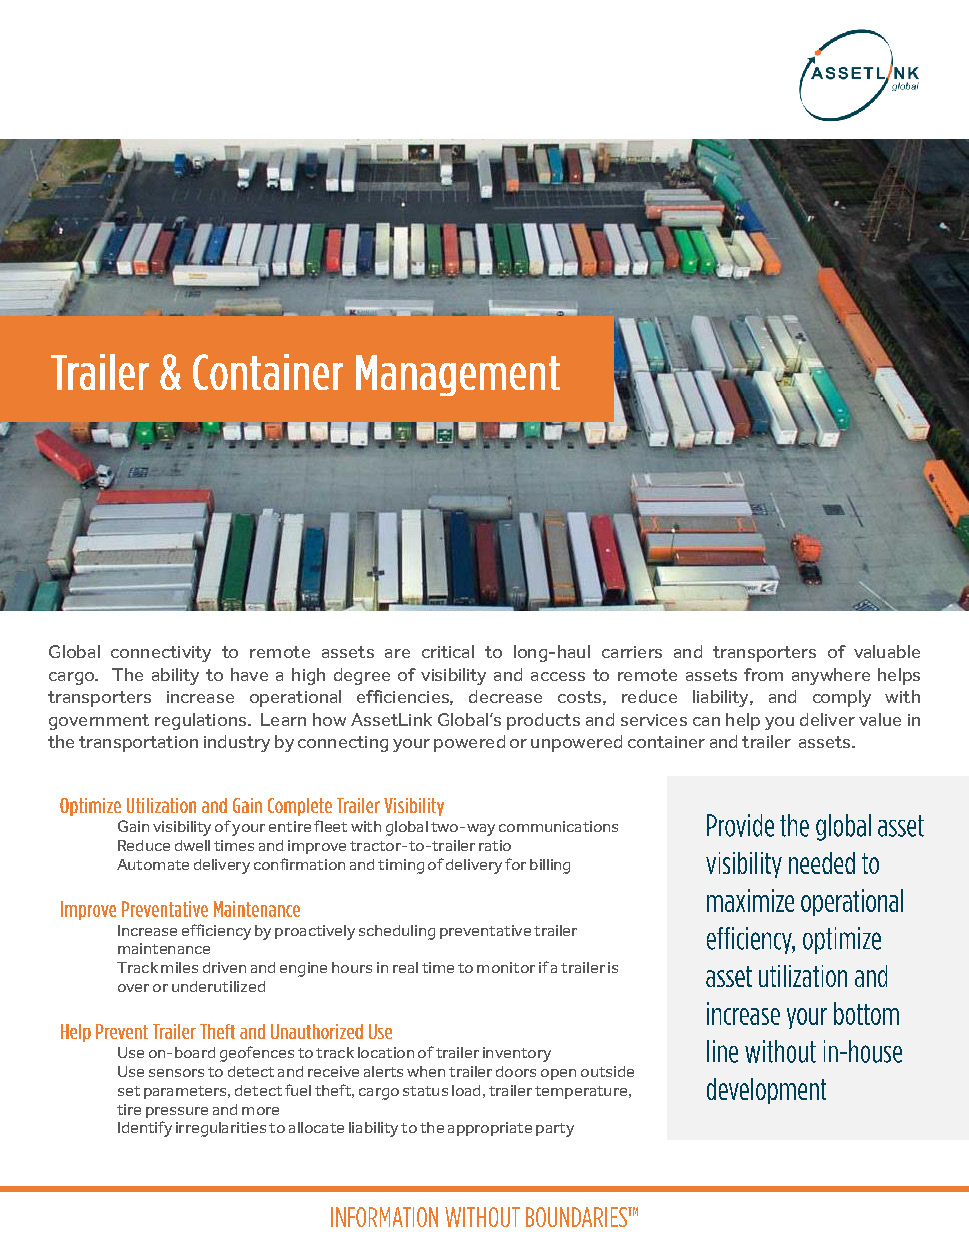 Trailer & Container Management